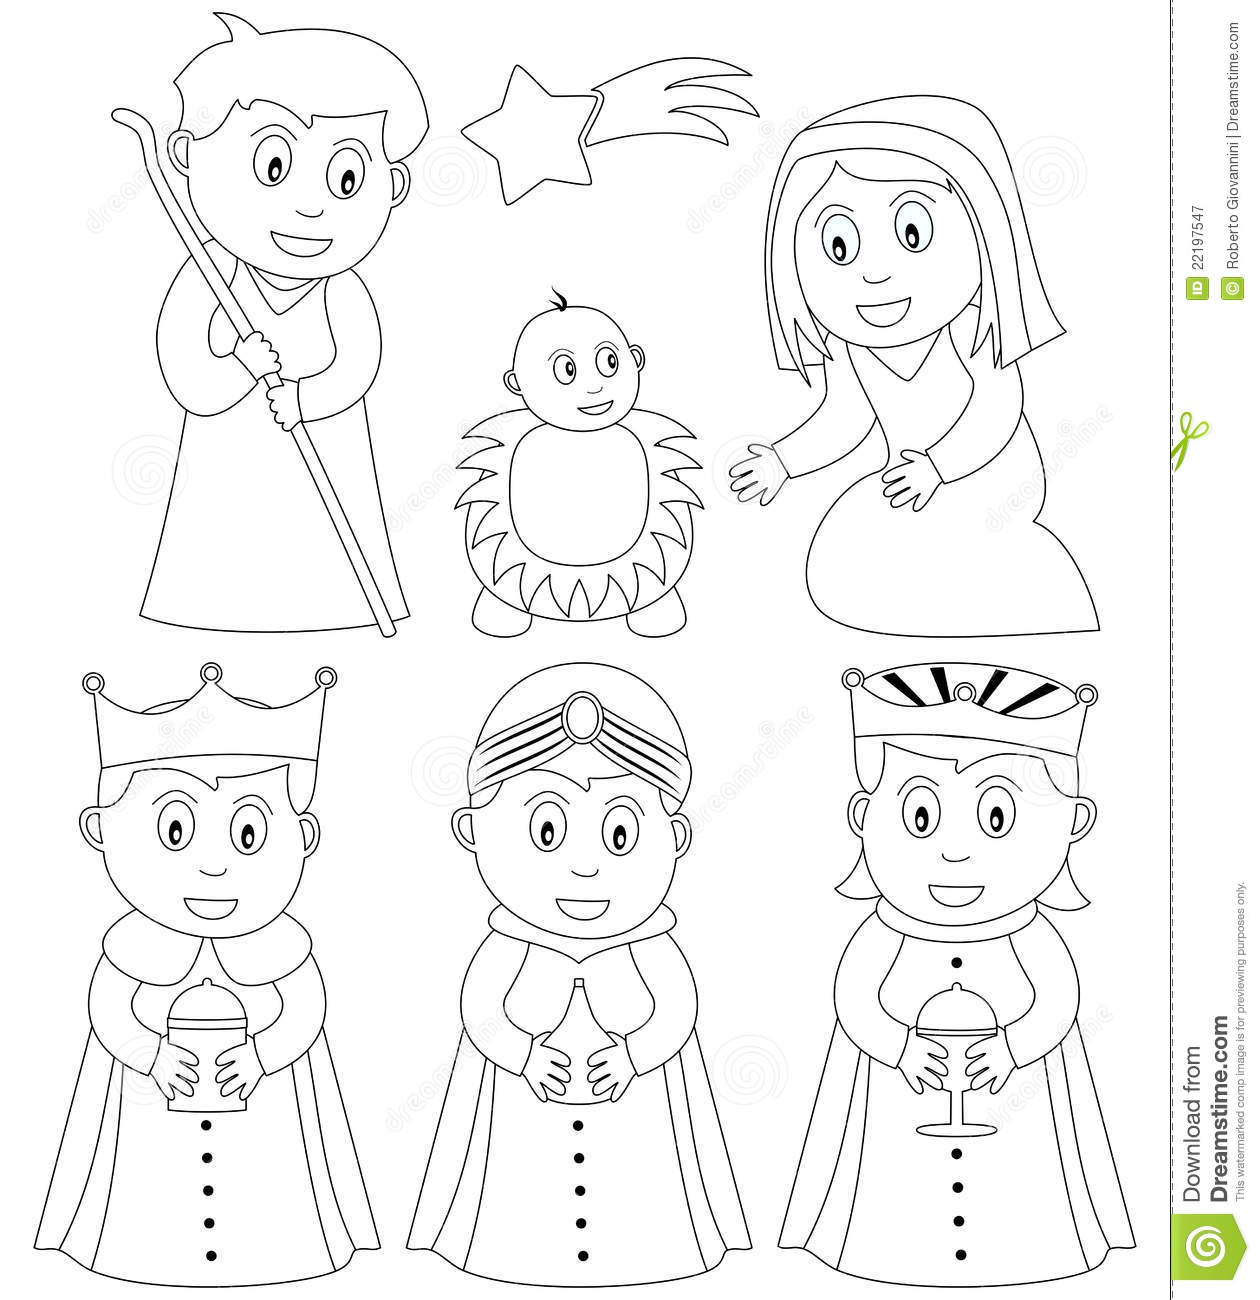 Coloring Christmas Nativity Stock Vector - Illustration of infant ...